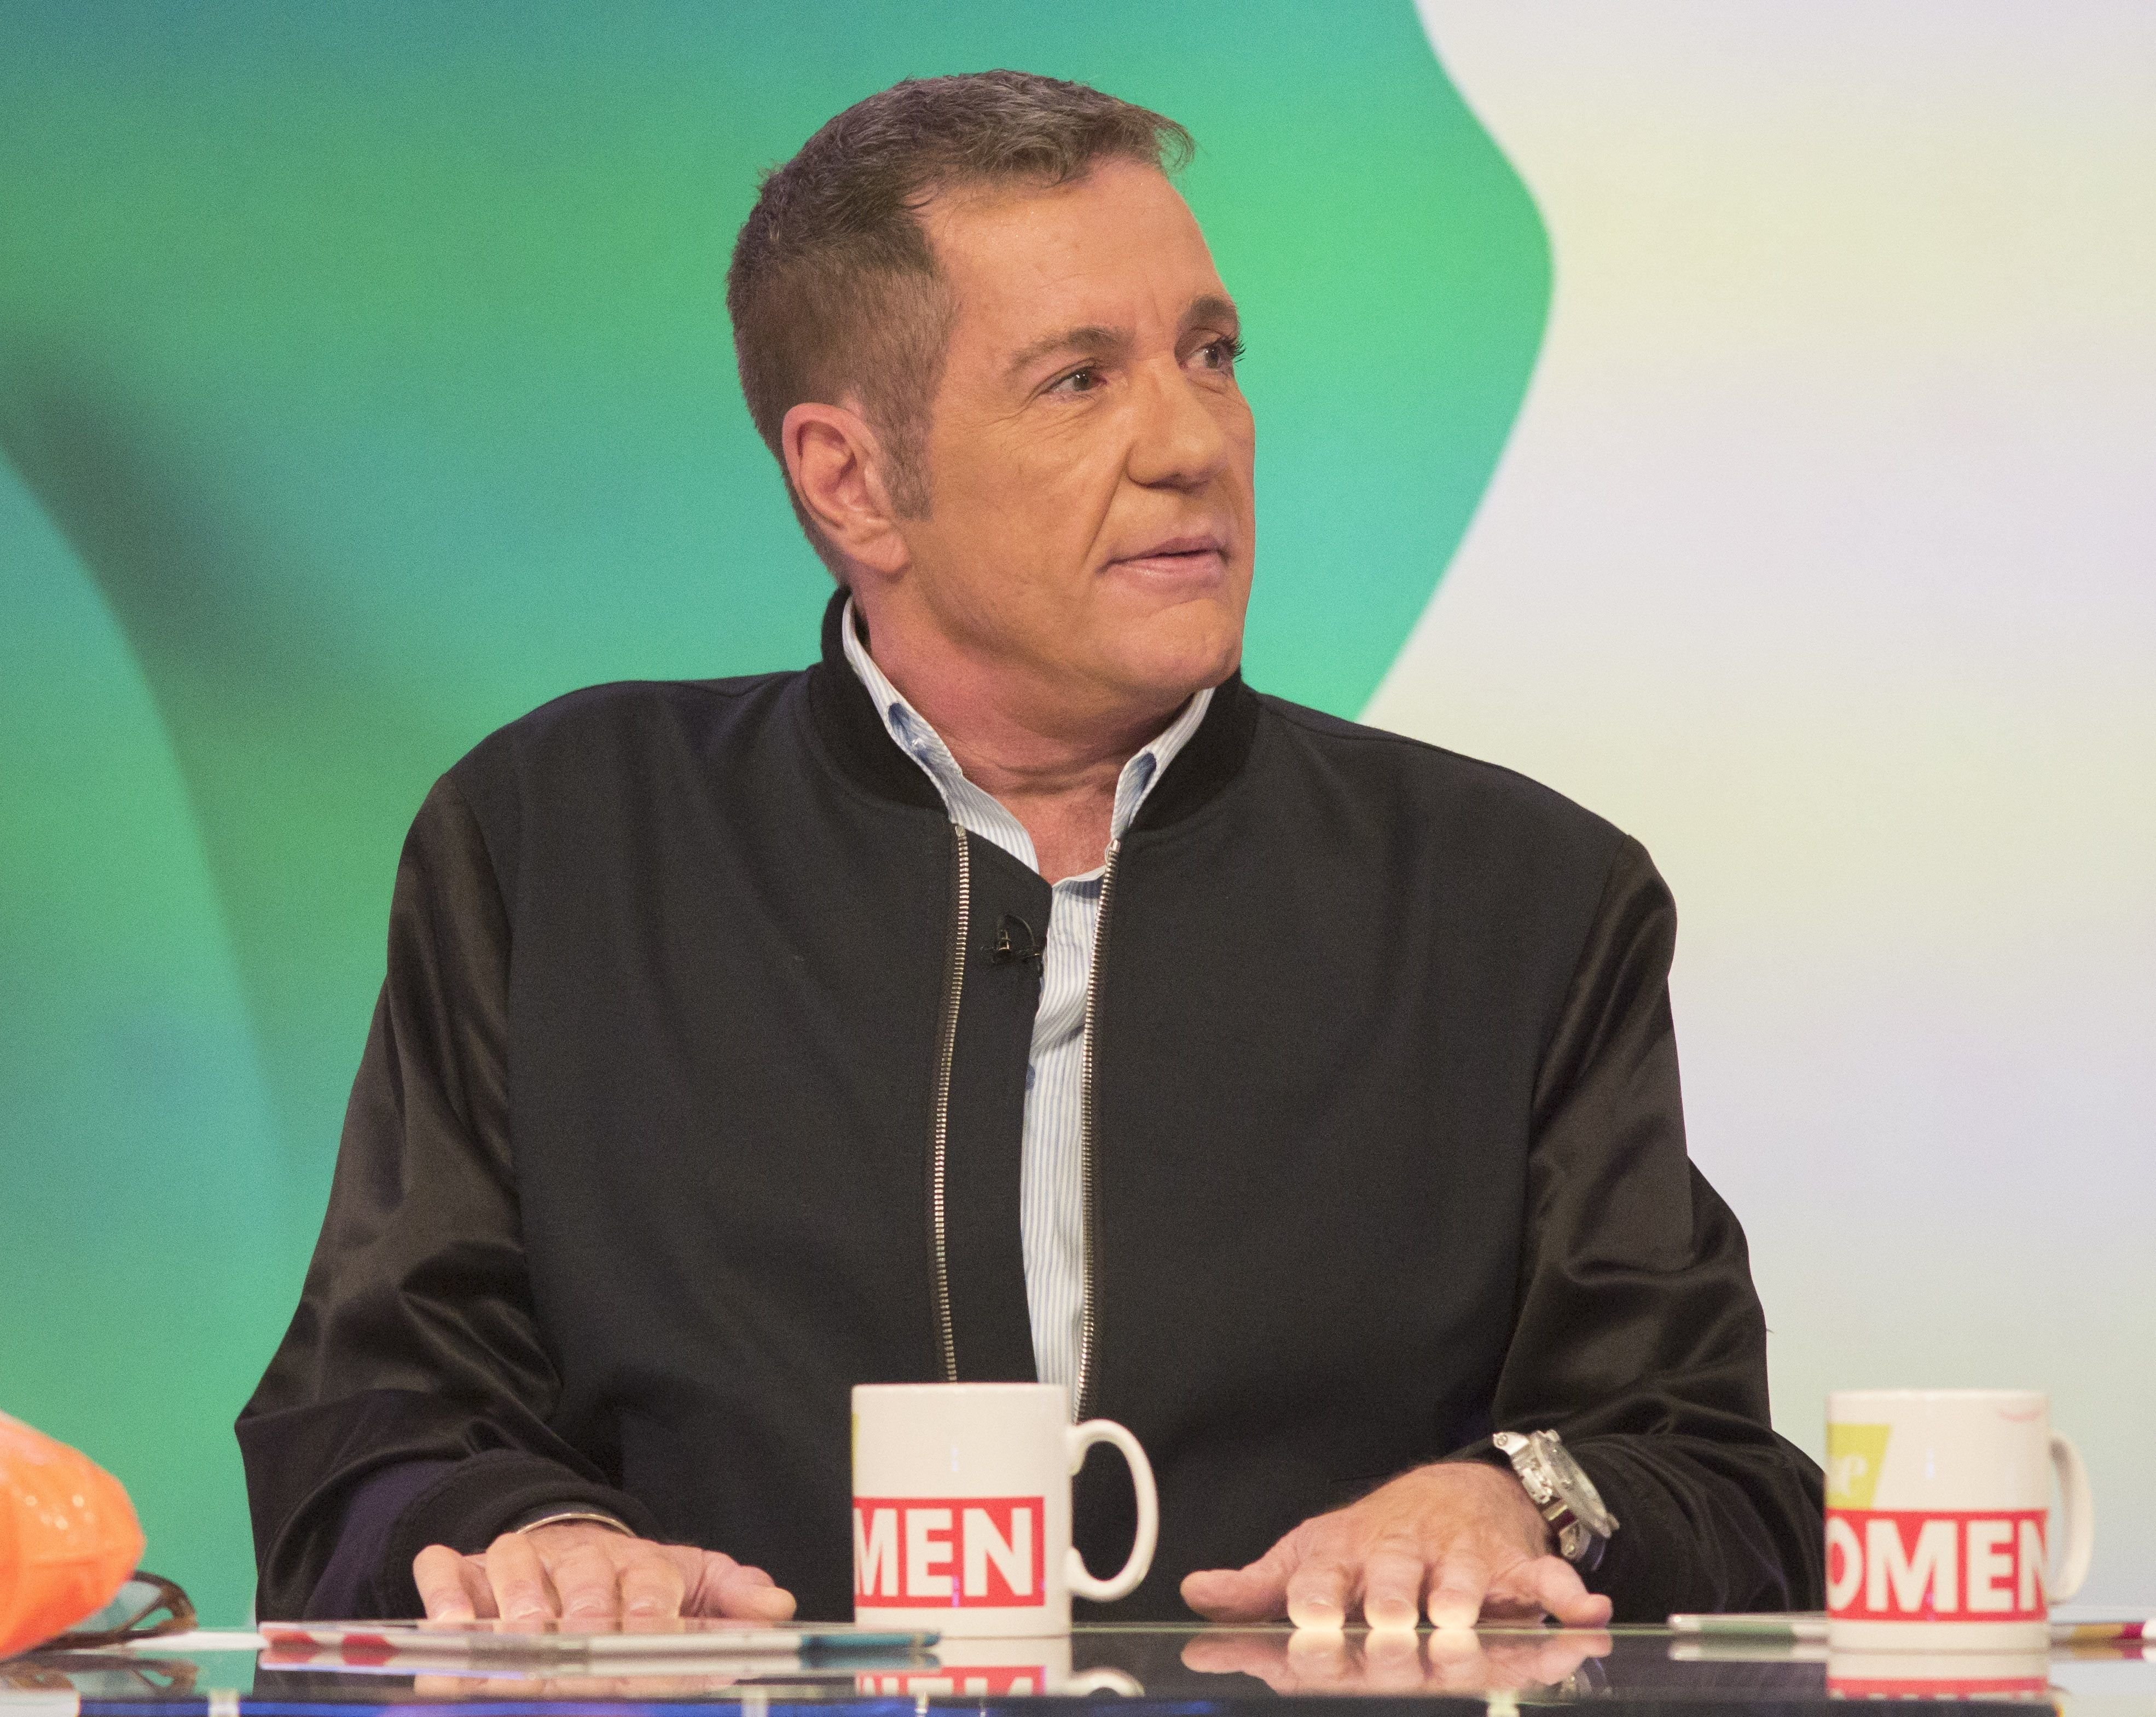 Dale Winton's Death Is Not Being Treated As Suspicious, Say Police